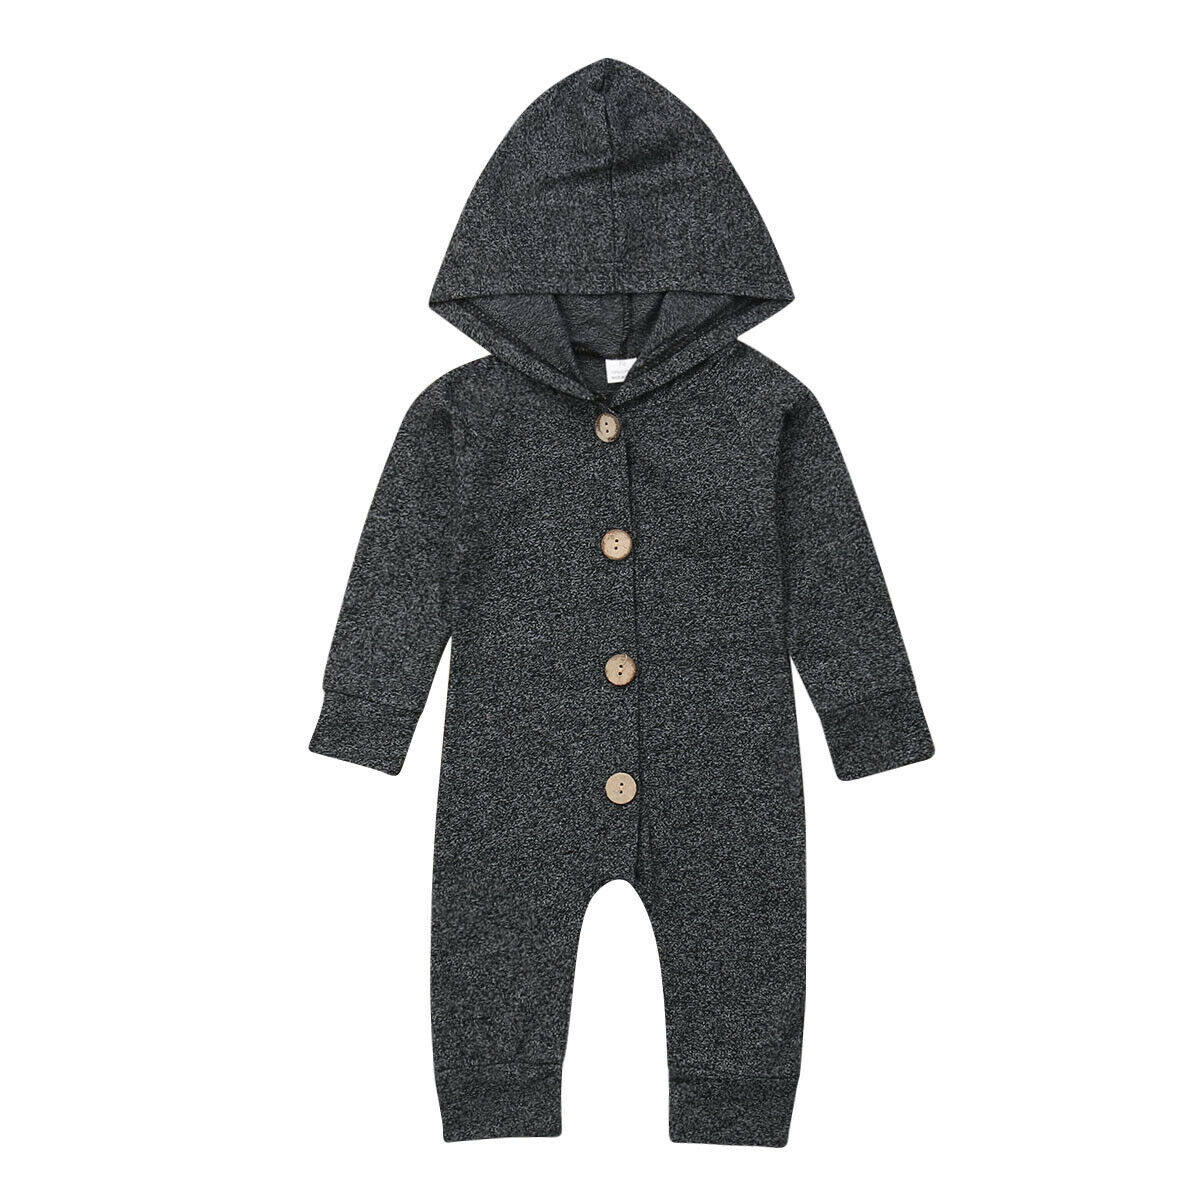 Autumn Newborn Kids Baby Boys Solid Color Long Sleeve Hooded Romper Jumpsuit Top Outfits